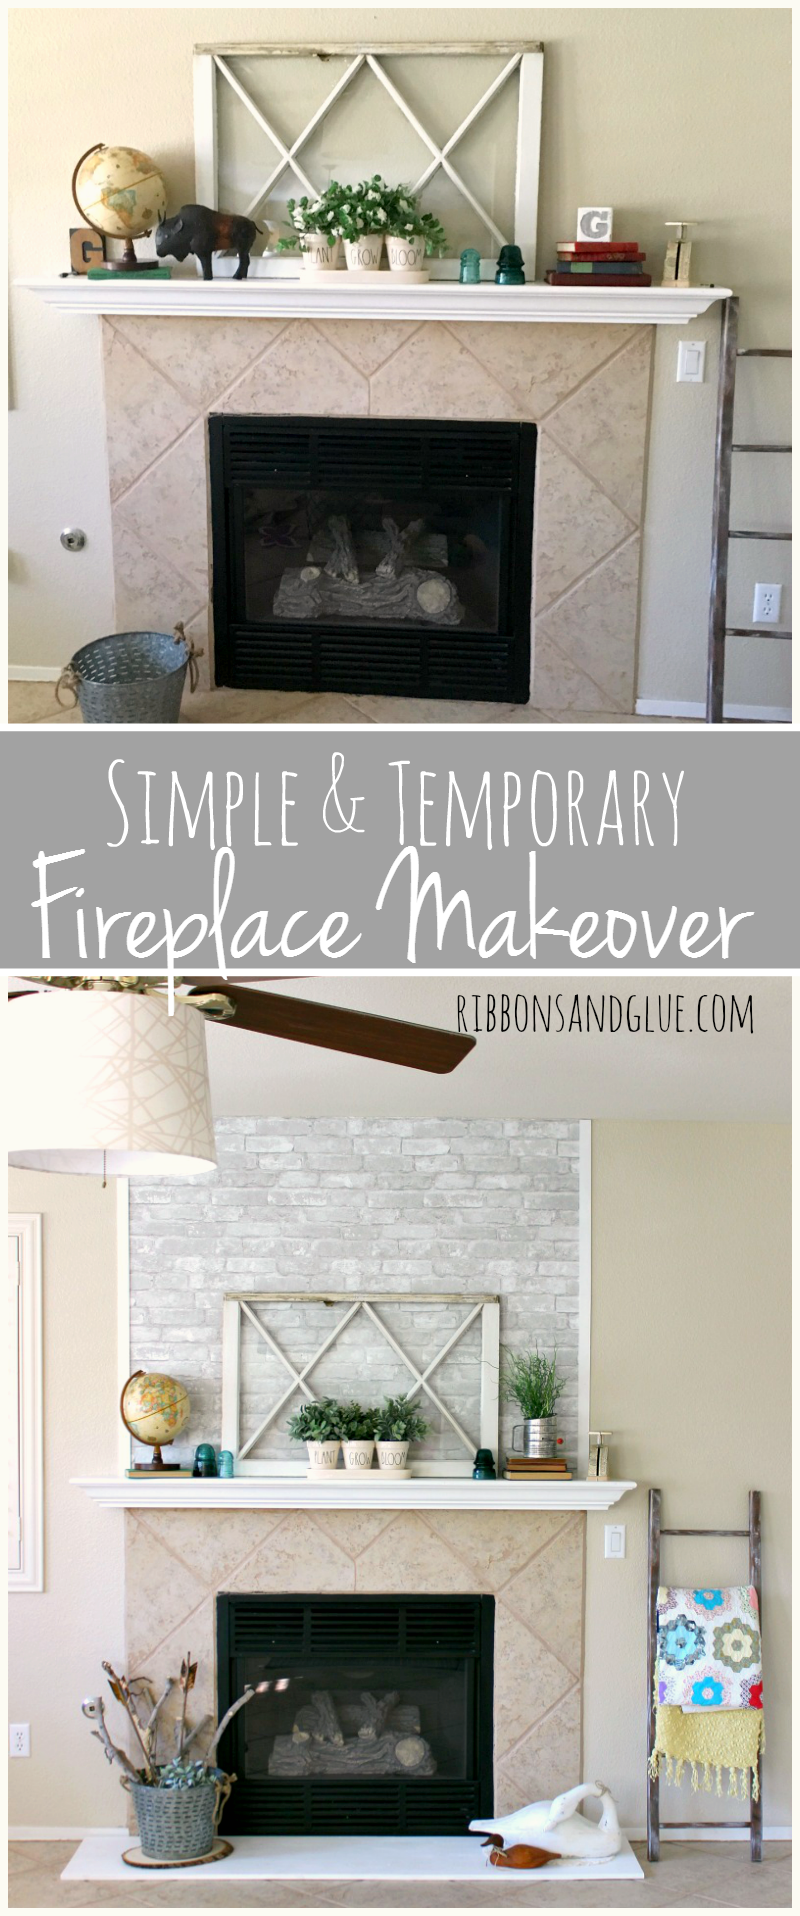 Simple Temporary Fireplace Makeover Using Removable Faux Brick Wallpaper From Wallpops And A P Fireplace Makeover Wallpaper Fireplace Brick Fireplace Makeover